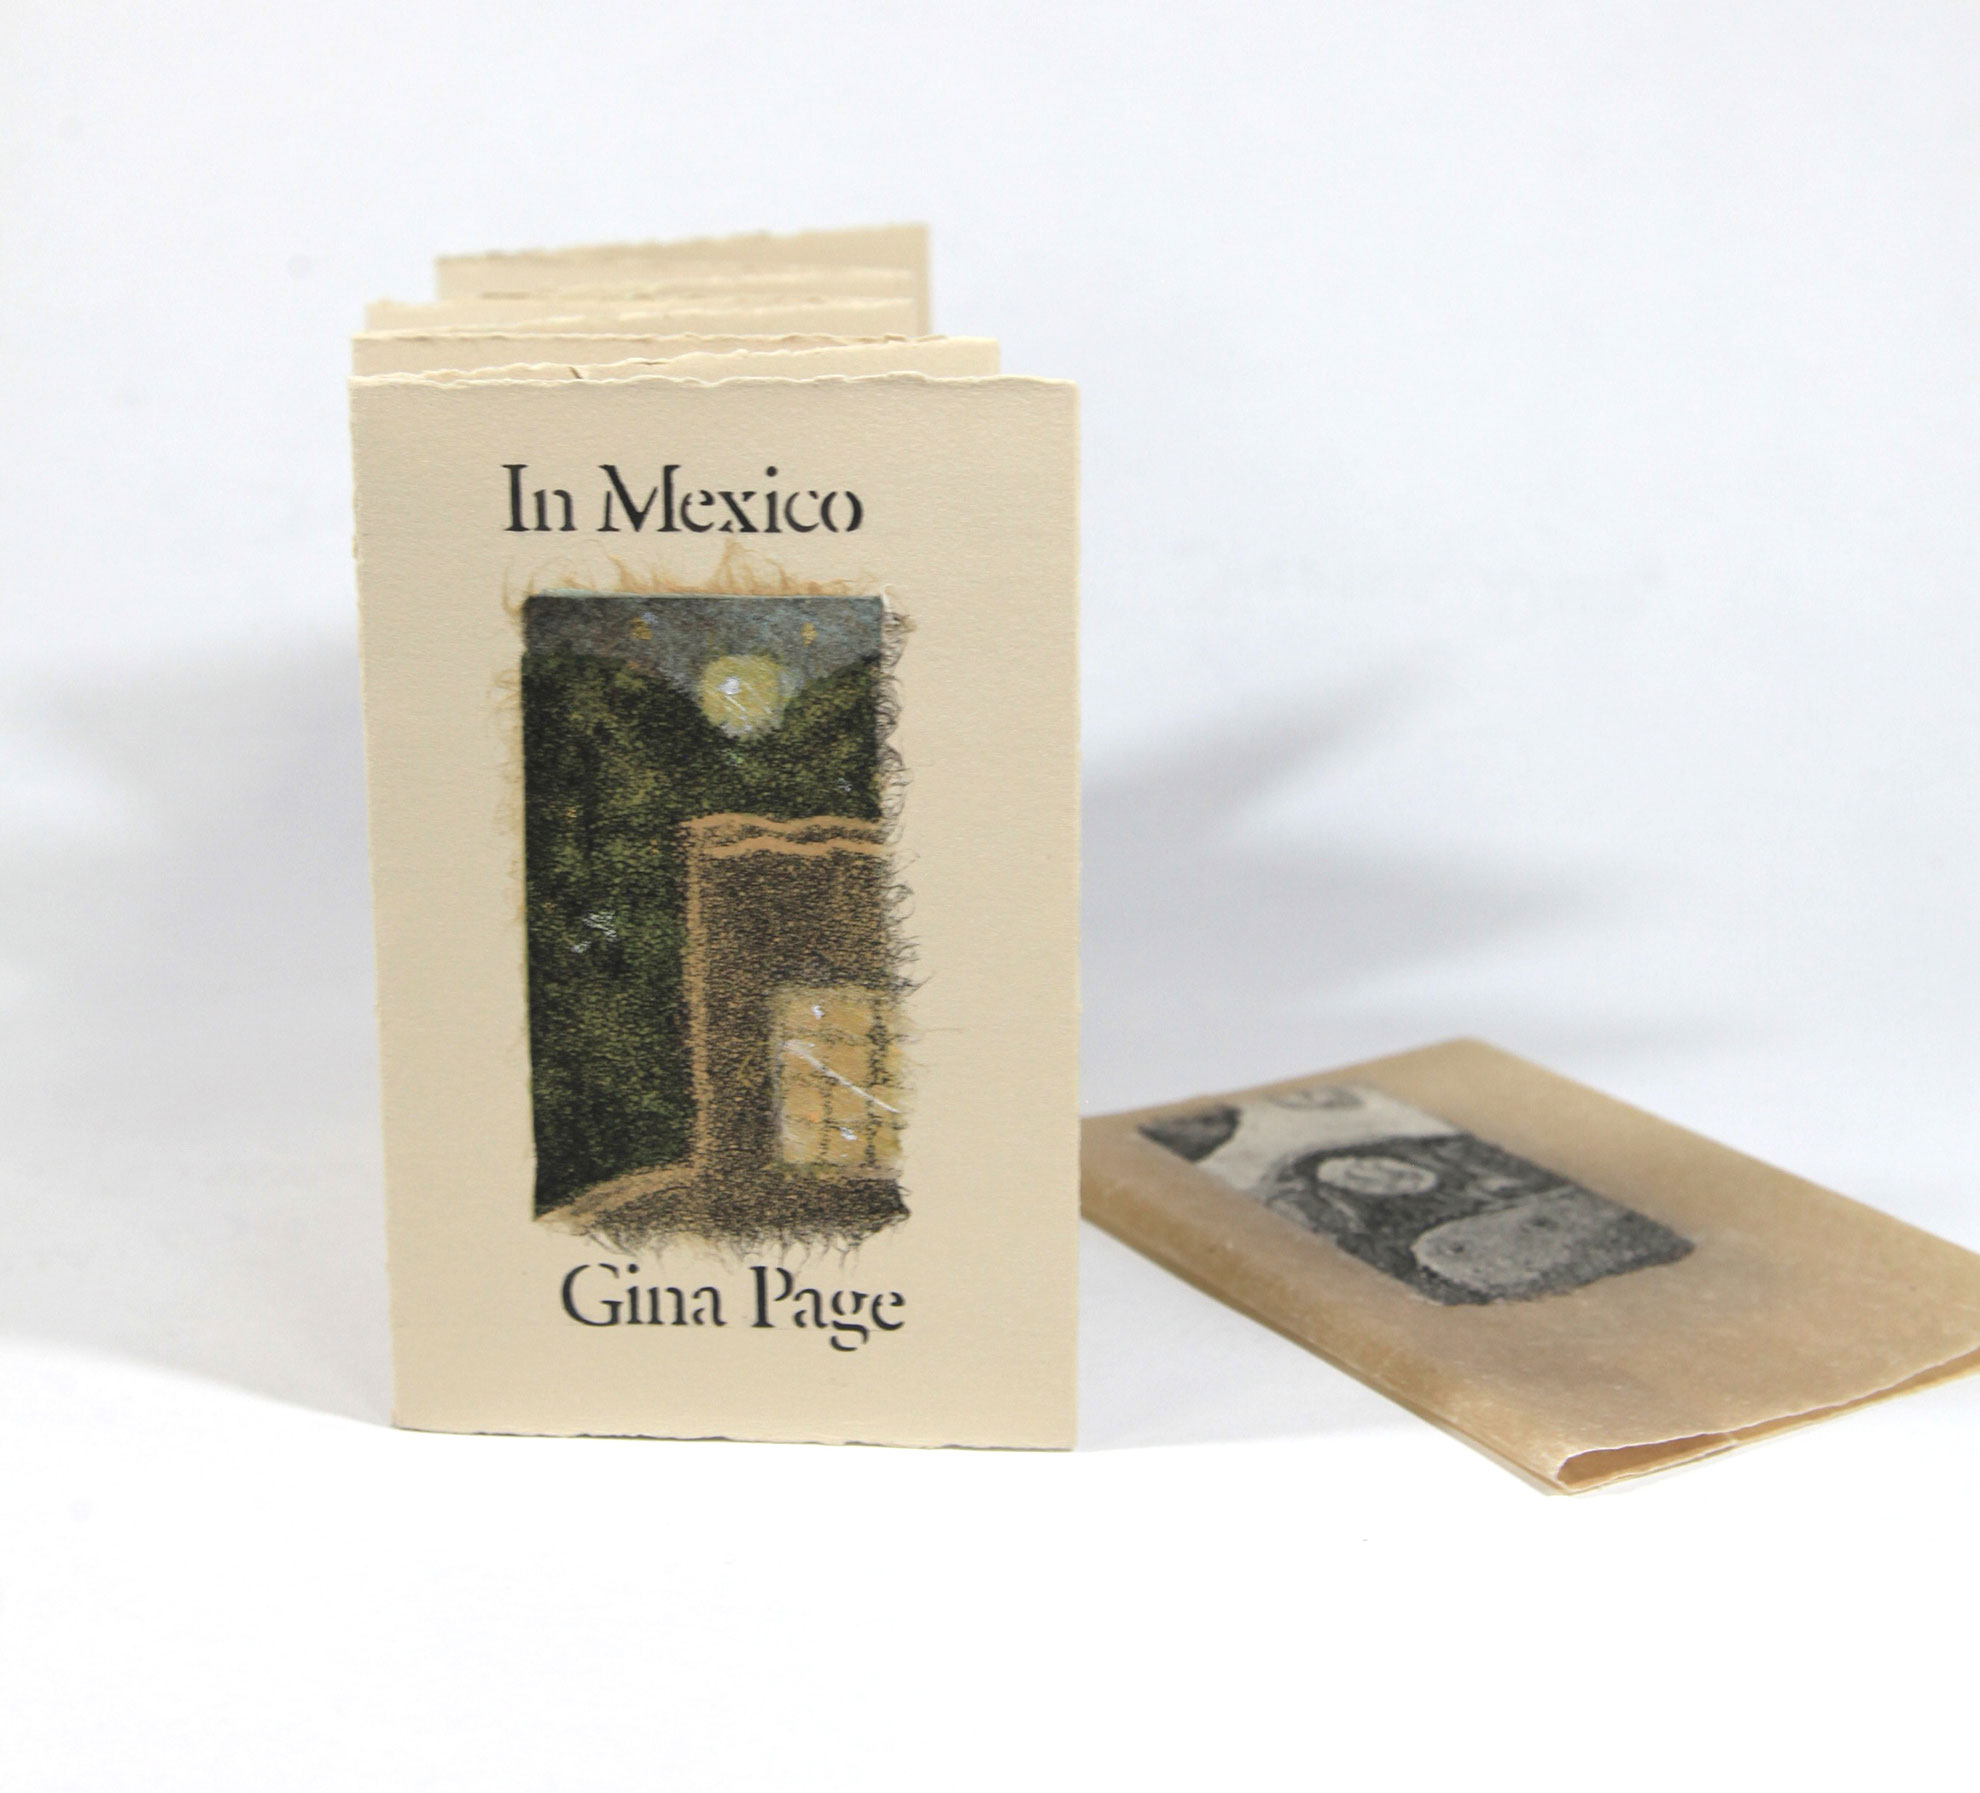 Gina Page, In Mexico, Chine colle aquatints, stenciled art, 2011, $125, Richmond, British Columbia, Canada